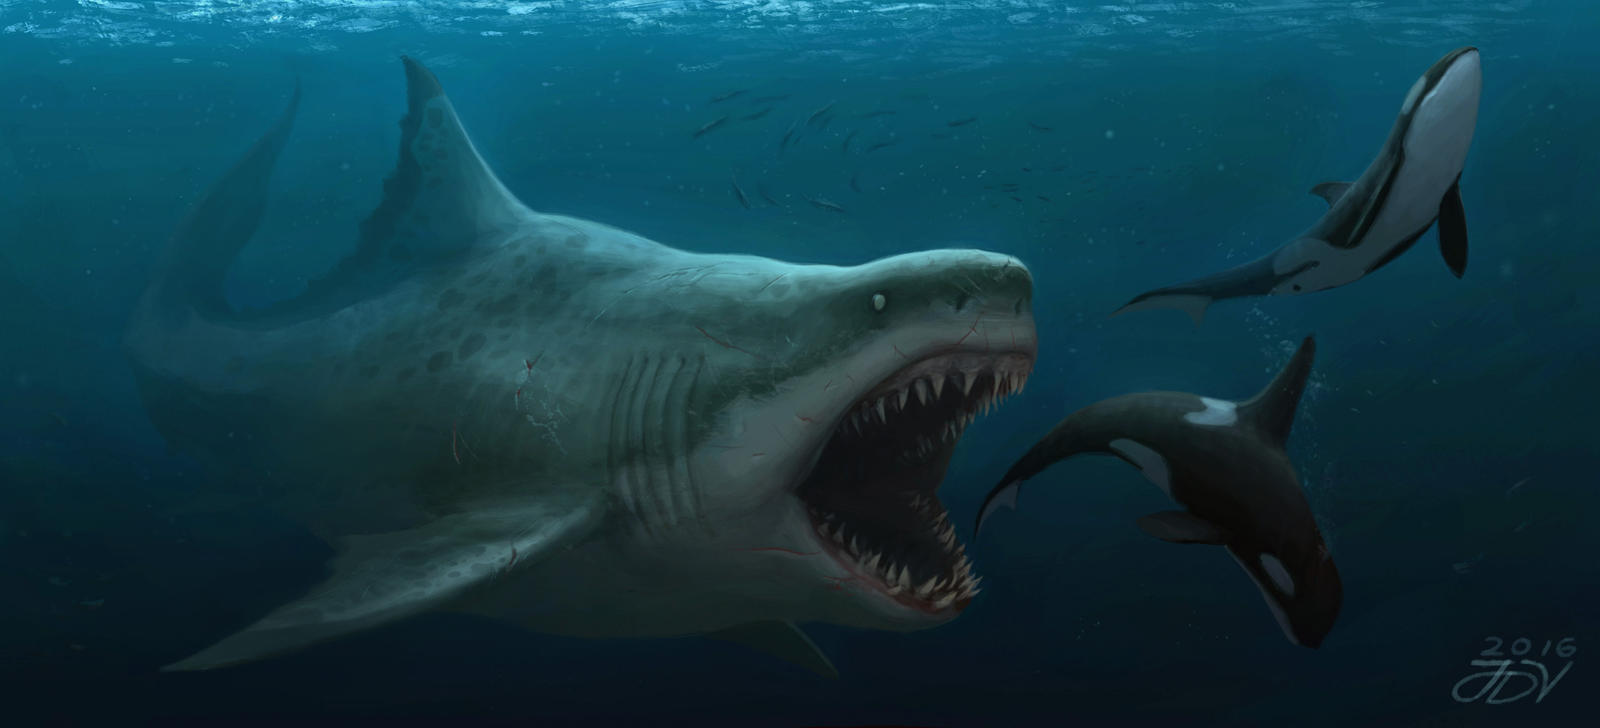 Megalodon by JoseDalisayV on DeviantArt